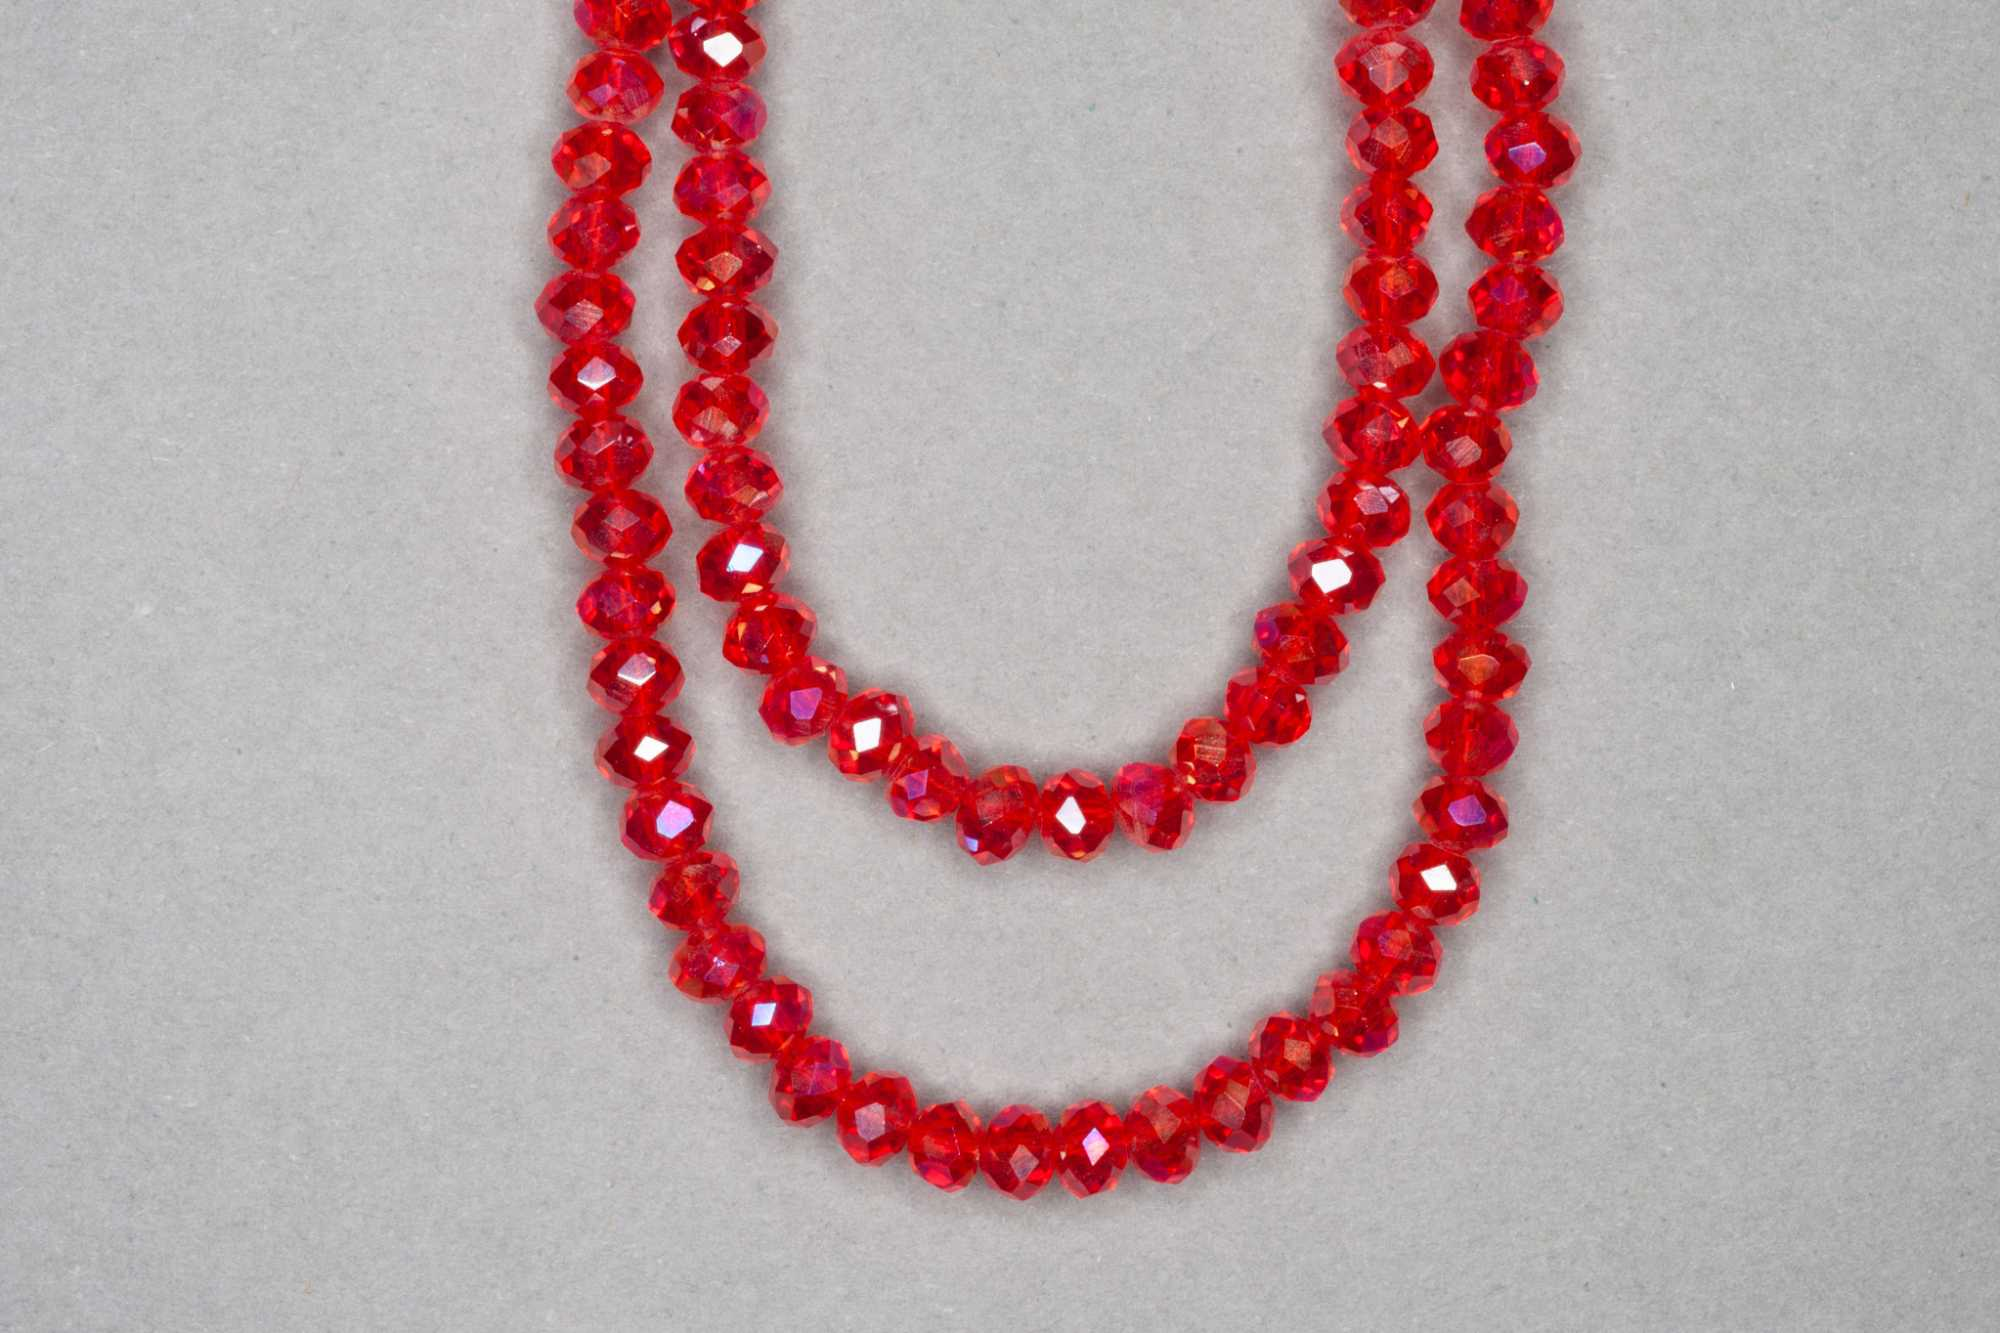 AB Red Orange Faceted Glass Beads